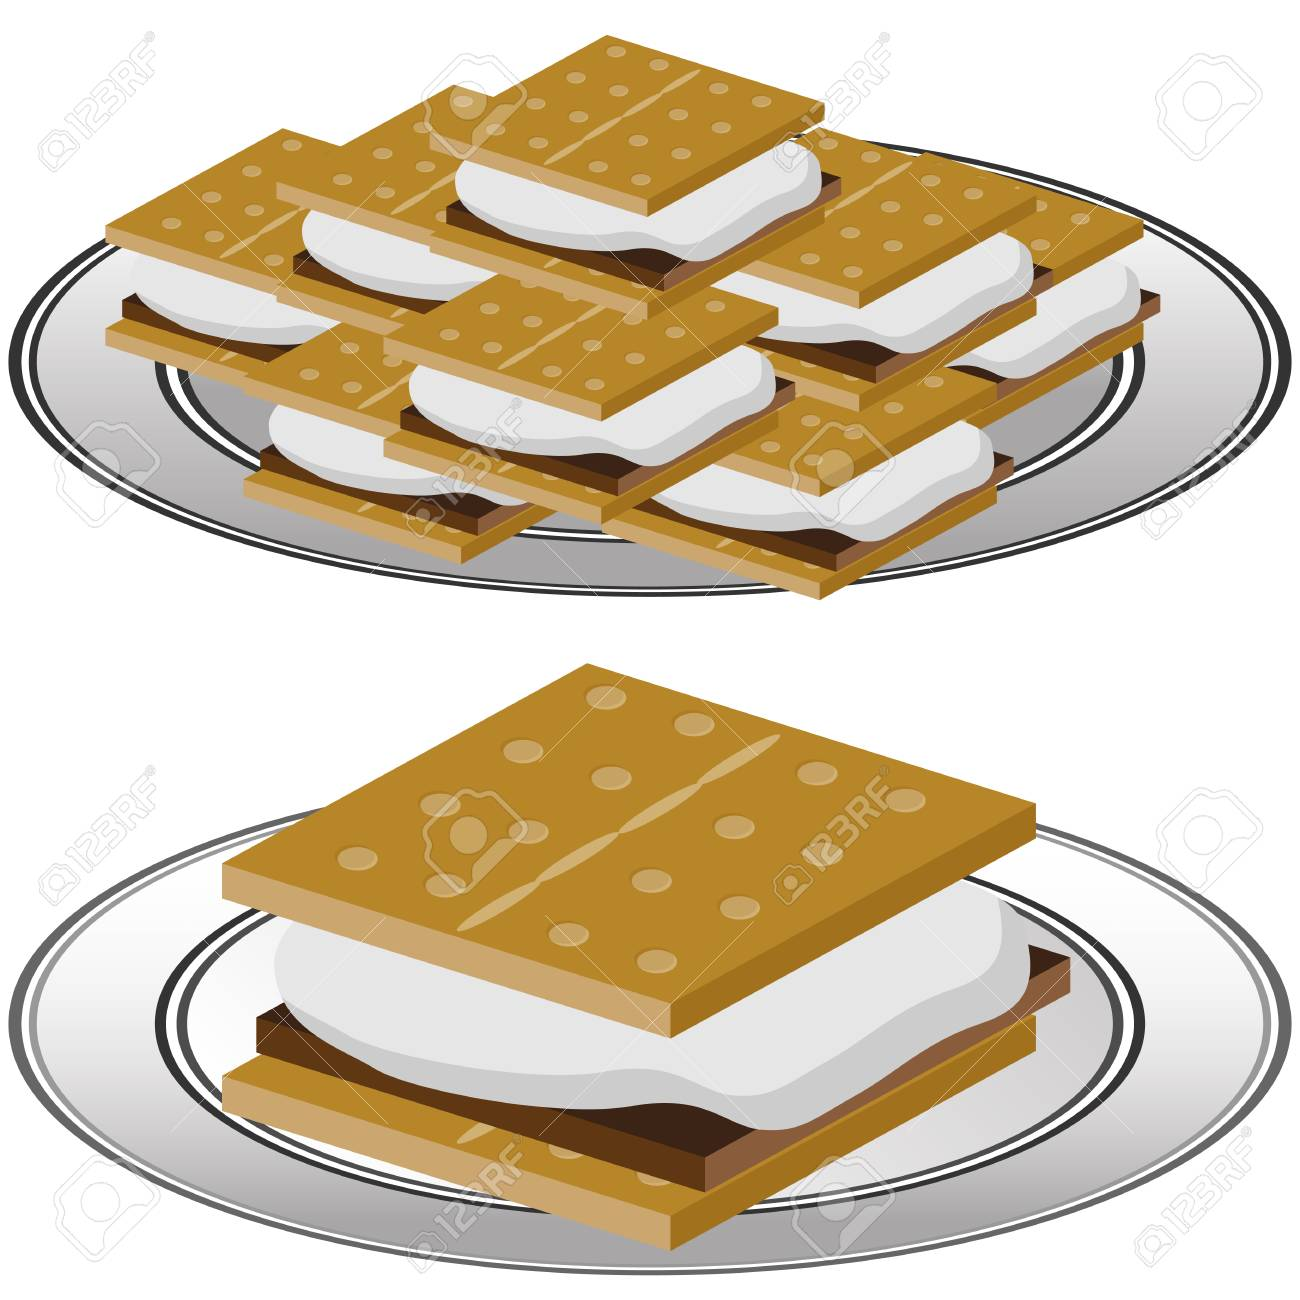 hight resolution of an image of a plate of graham cracker smores isolated on a white background stock